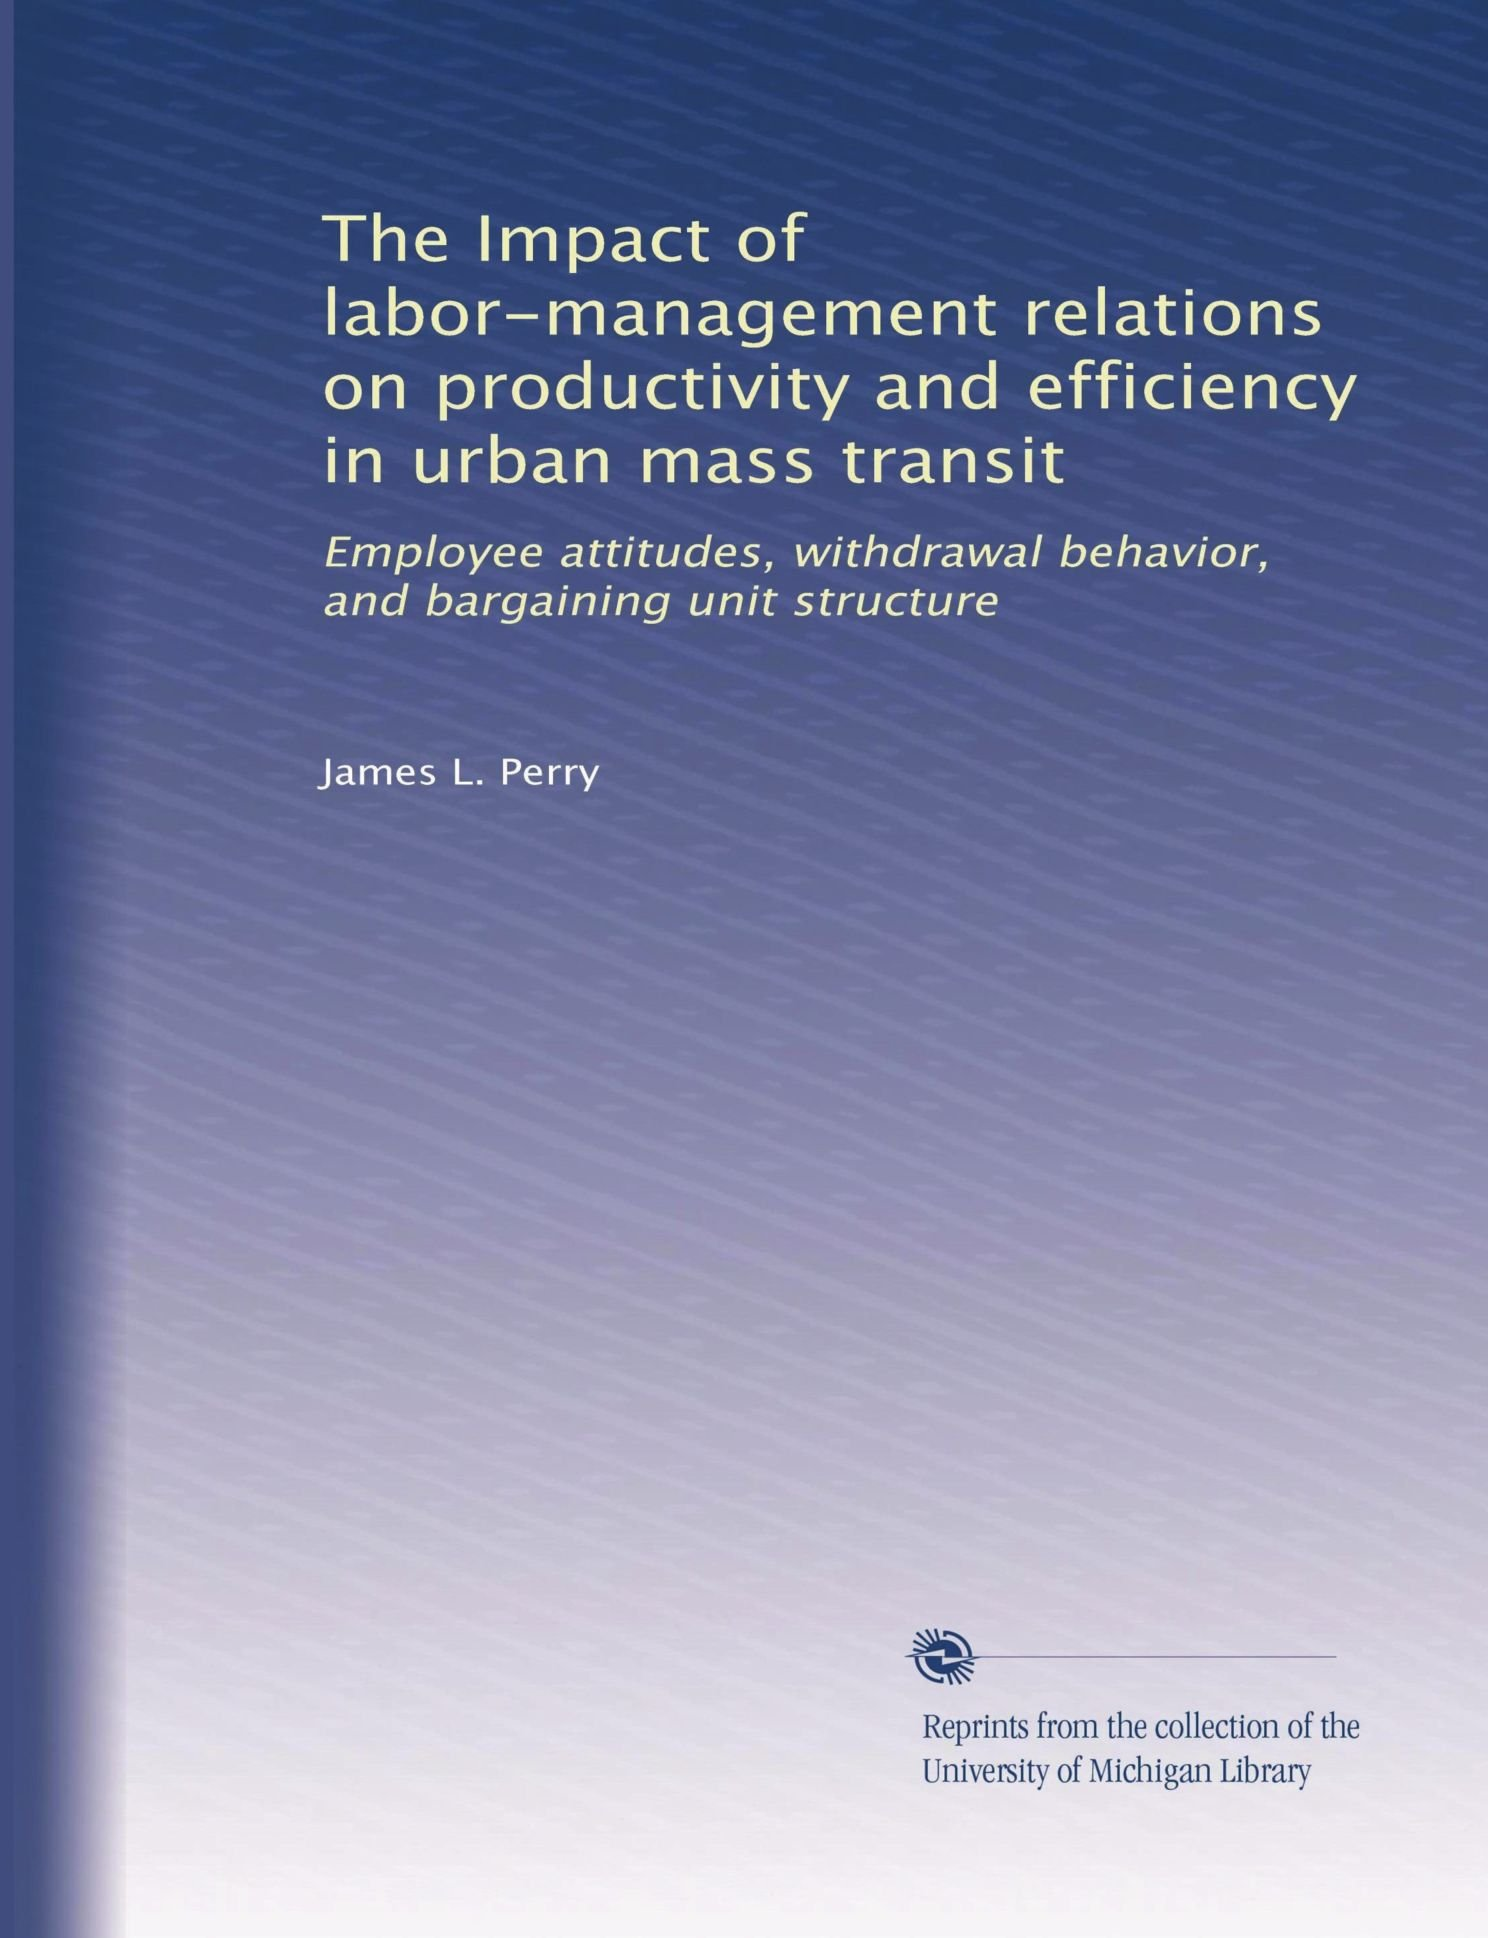 The Impact of labor-management relations on productivity and efficiency in urban mass transit: Employee attitudes, withdrawal behavior, and bargaining unit structure